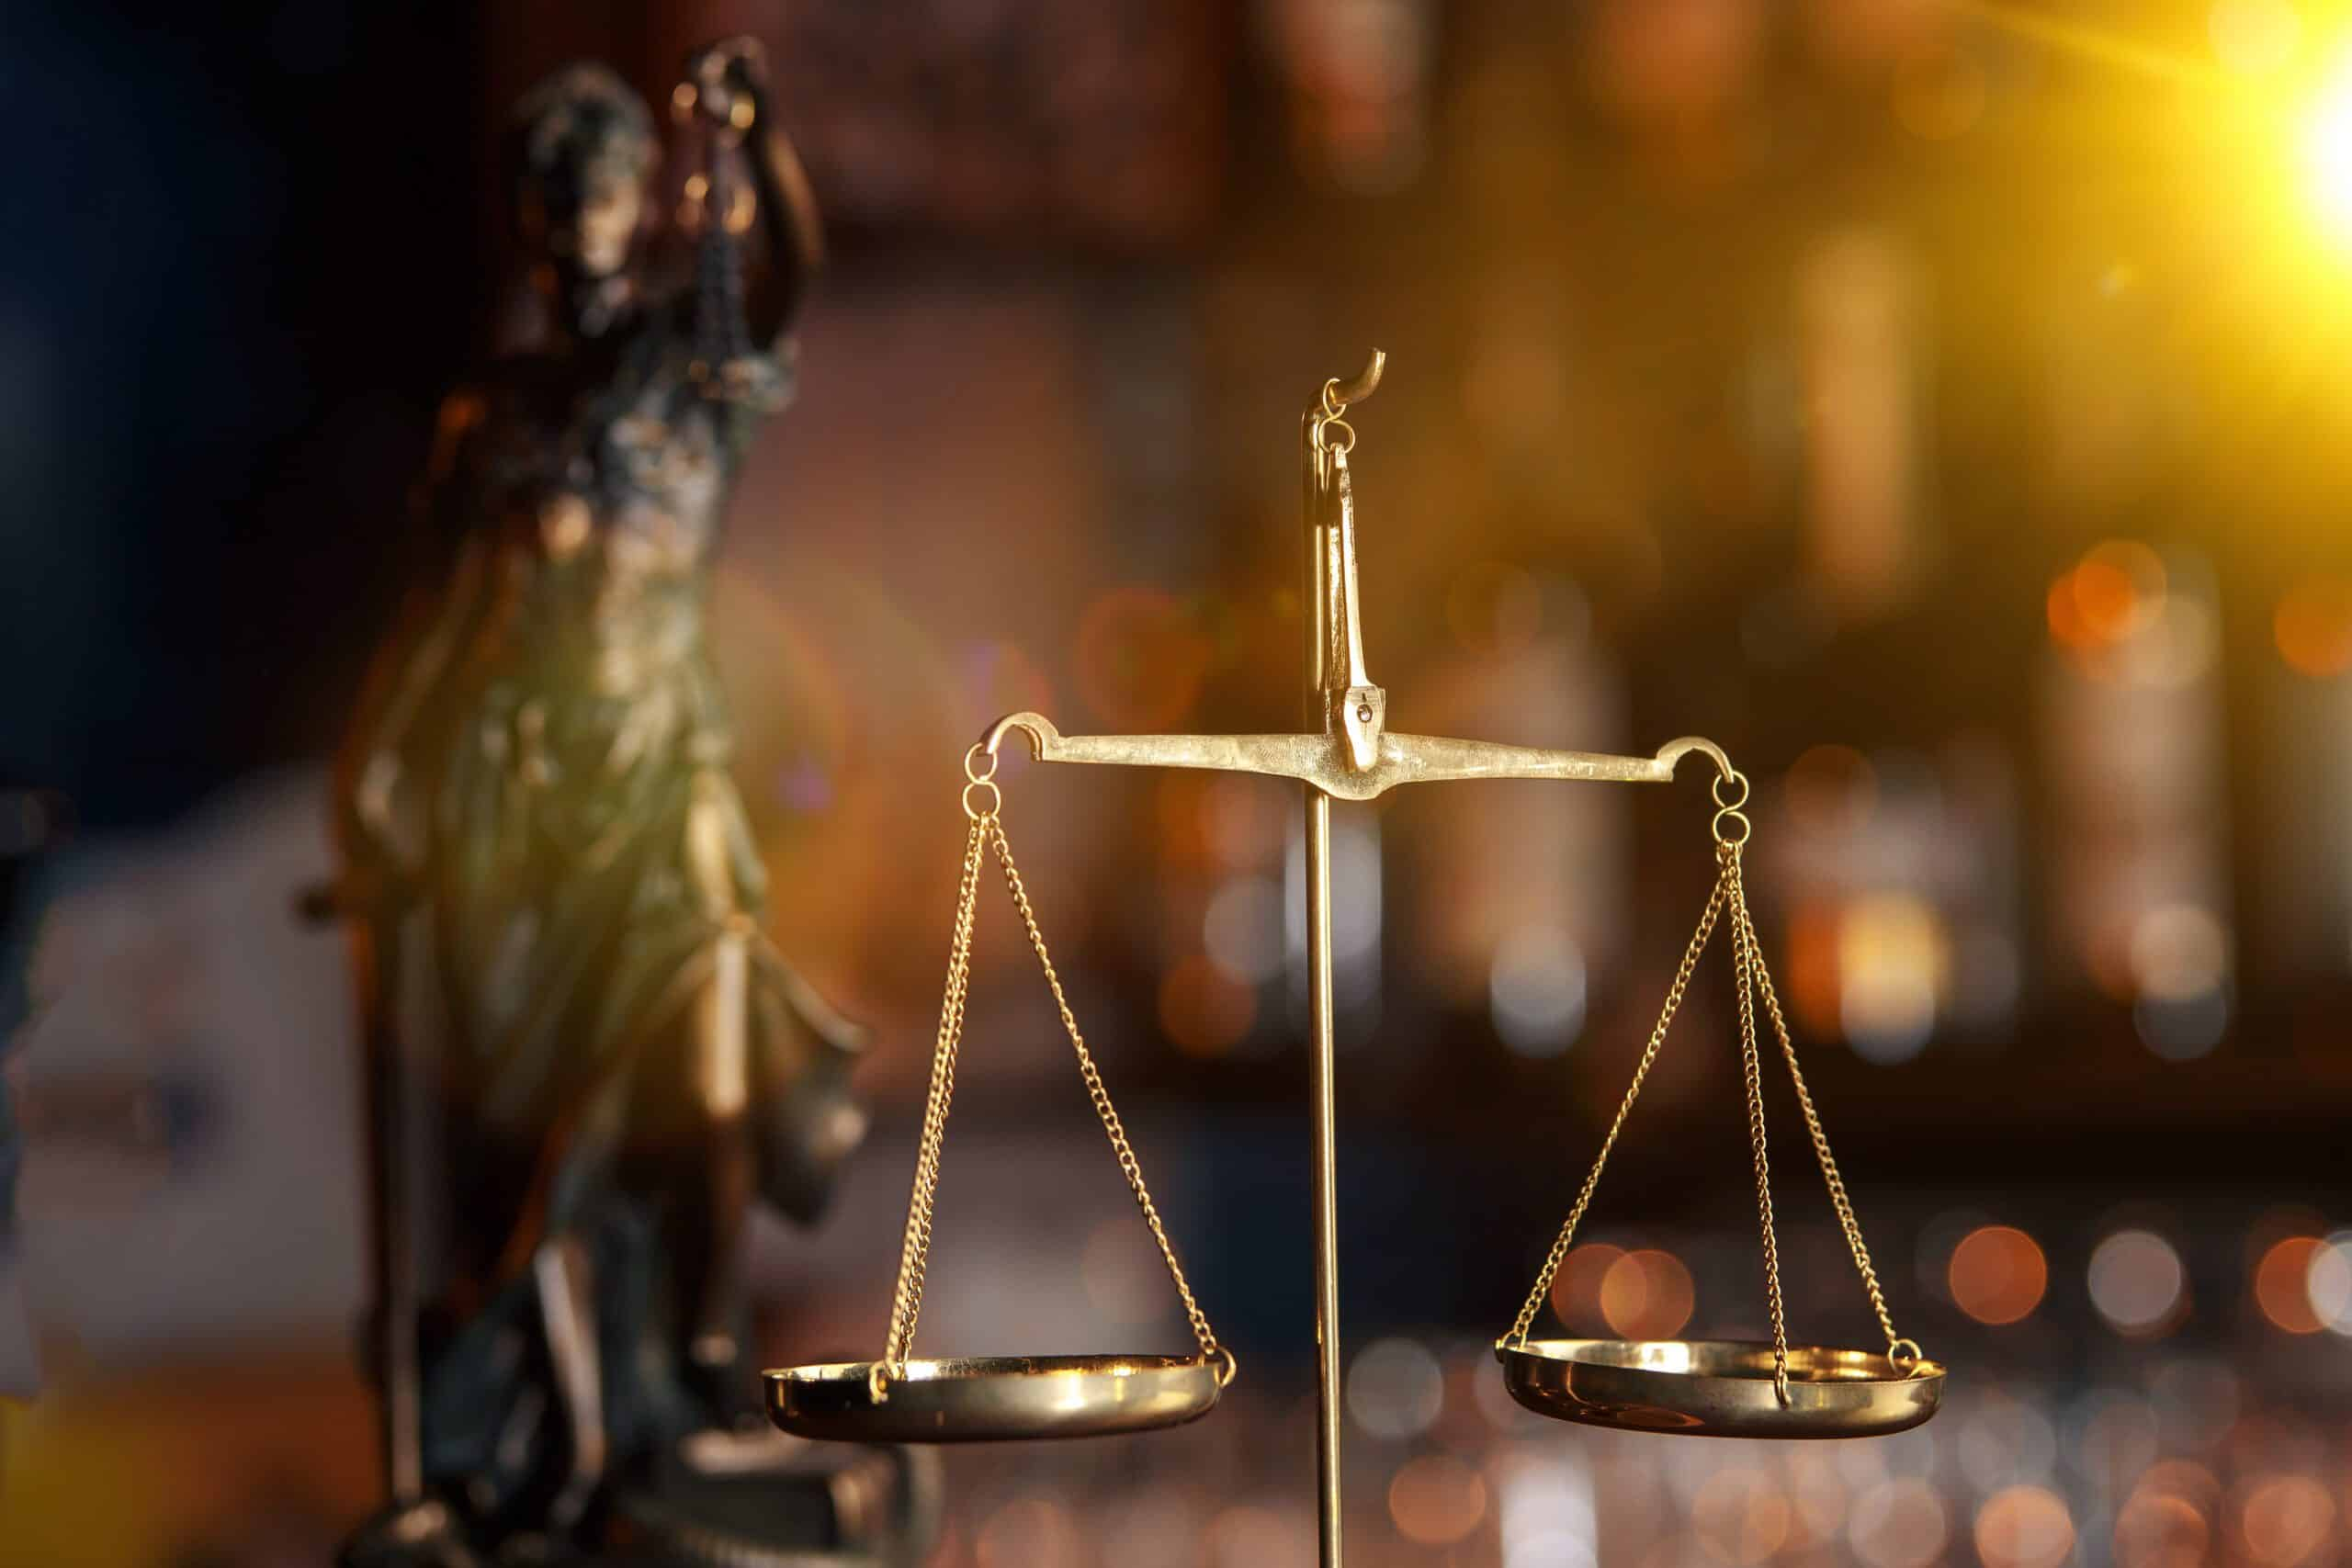 Physician Agrees to Pay to Resolve Allegations